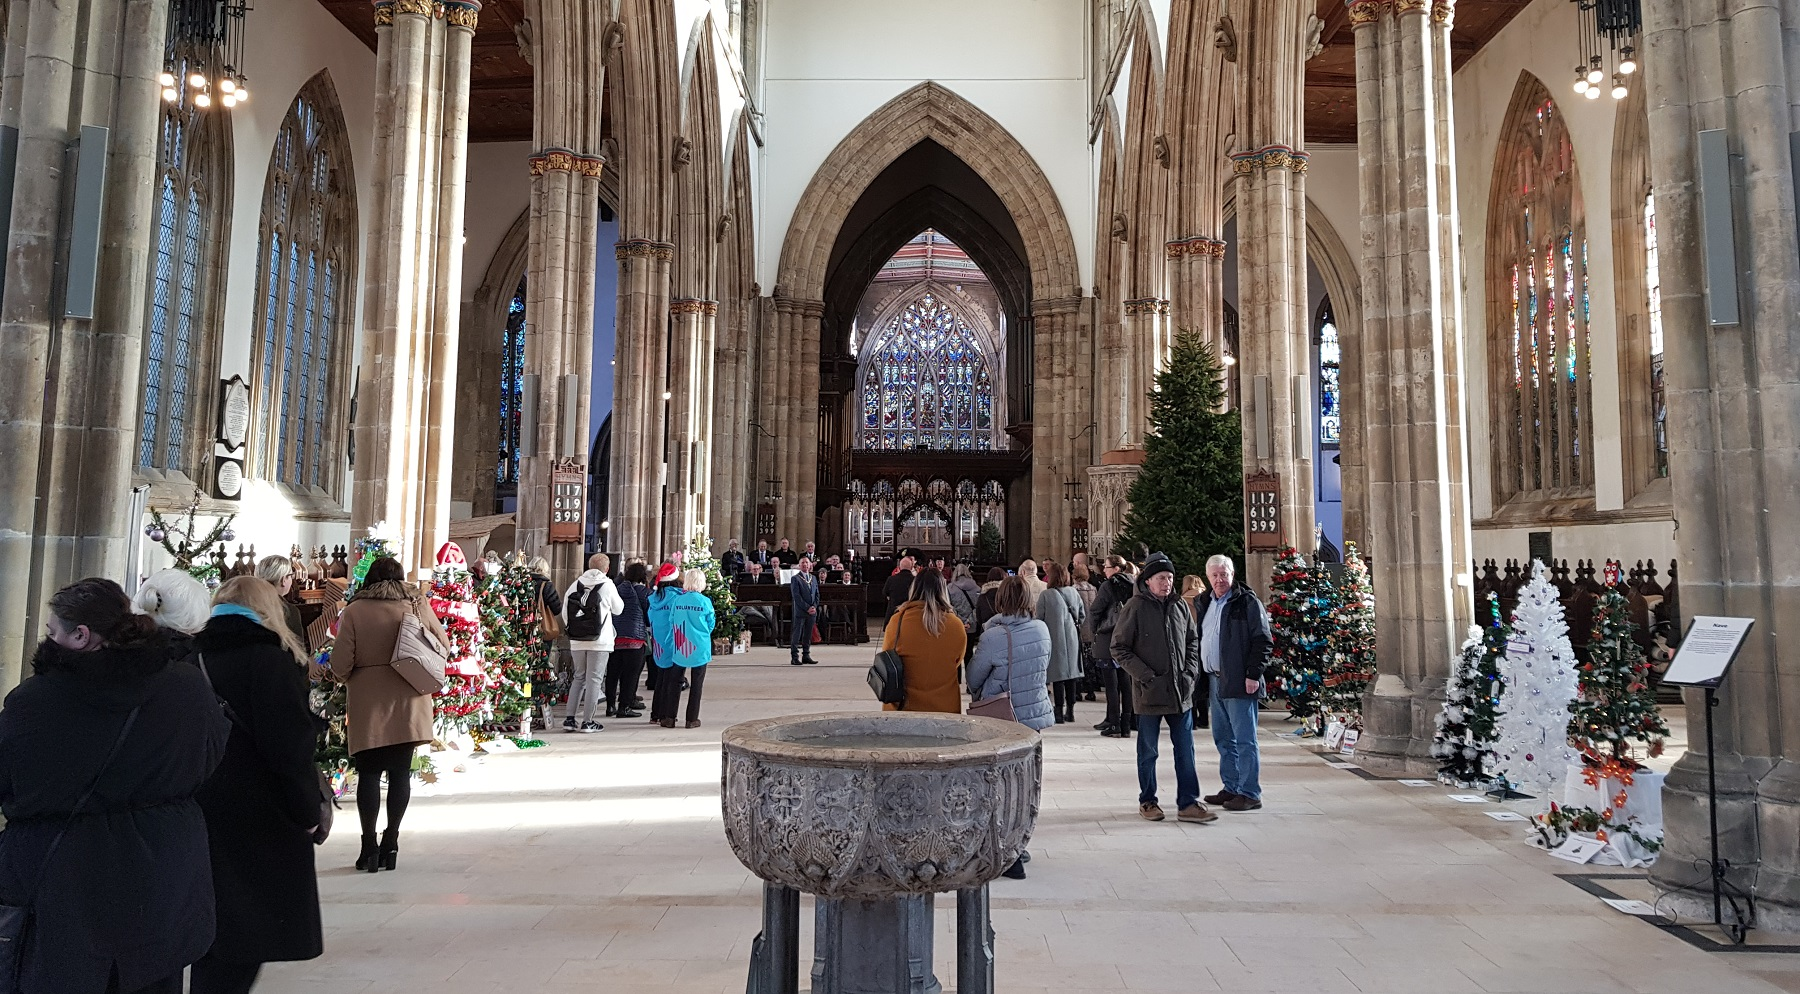 The Christmas Tree Festival at Hull Minster